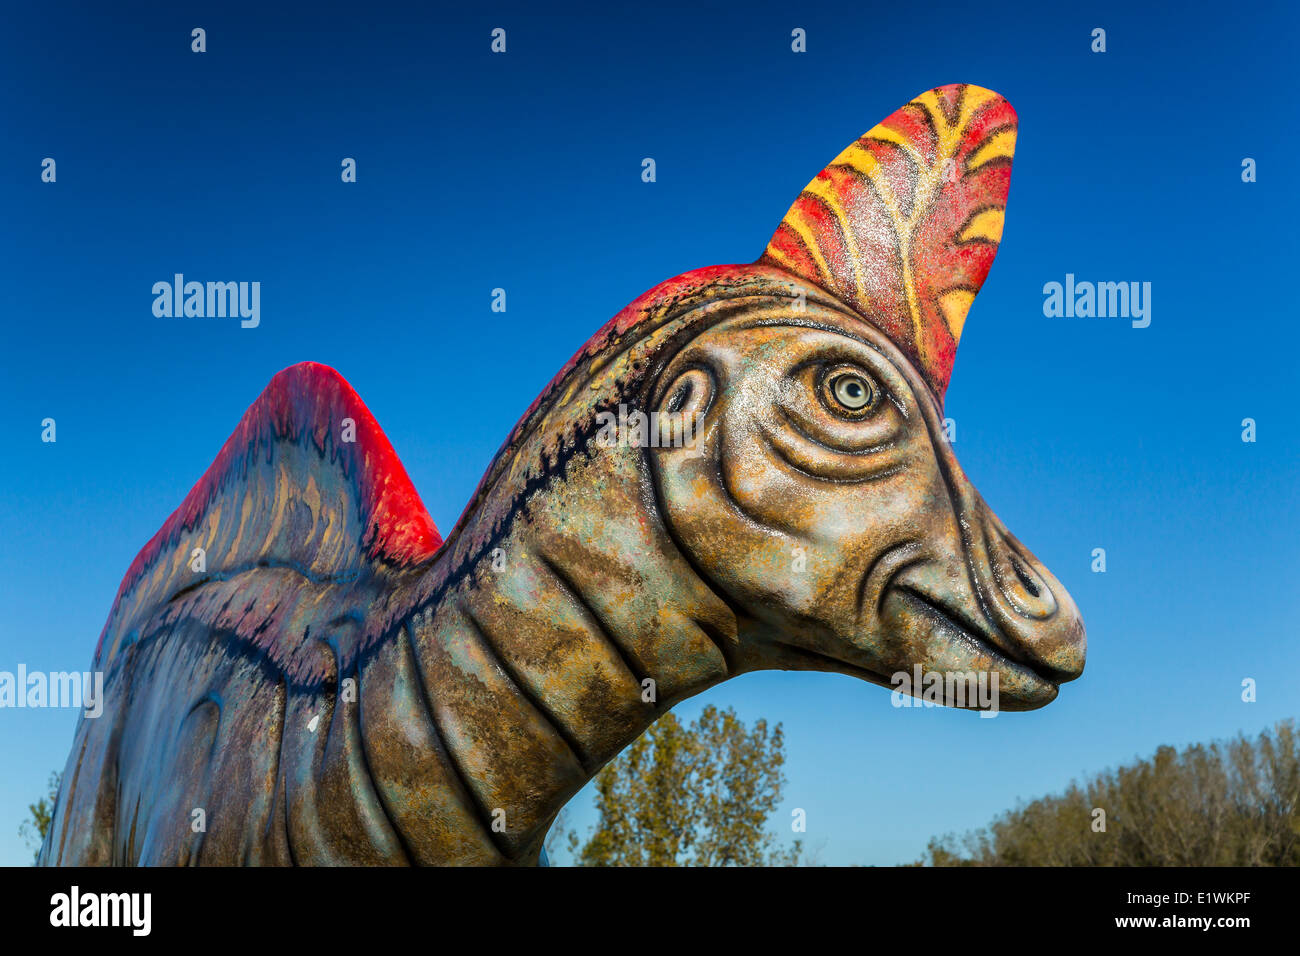 A roadside exhibit of dinosaurs at Madrid, Quebec, Canada. - Stock Image